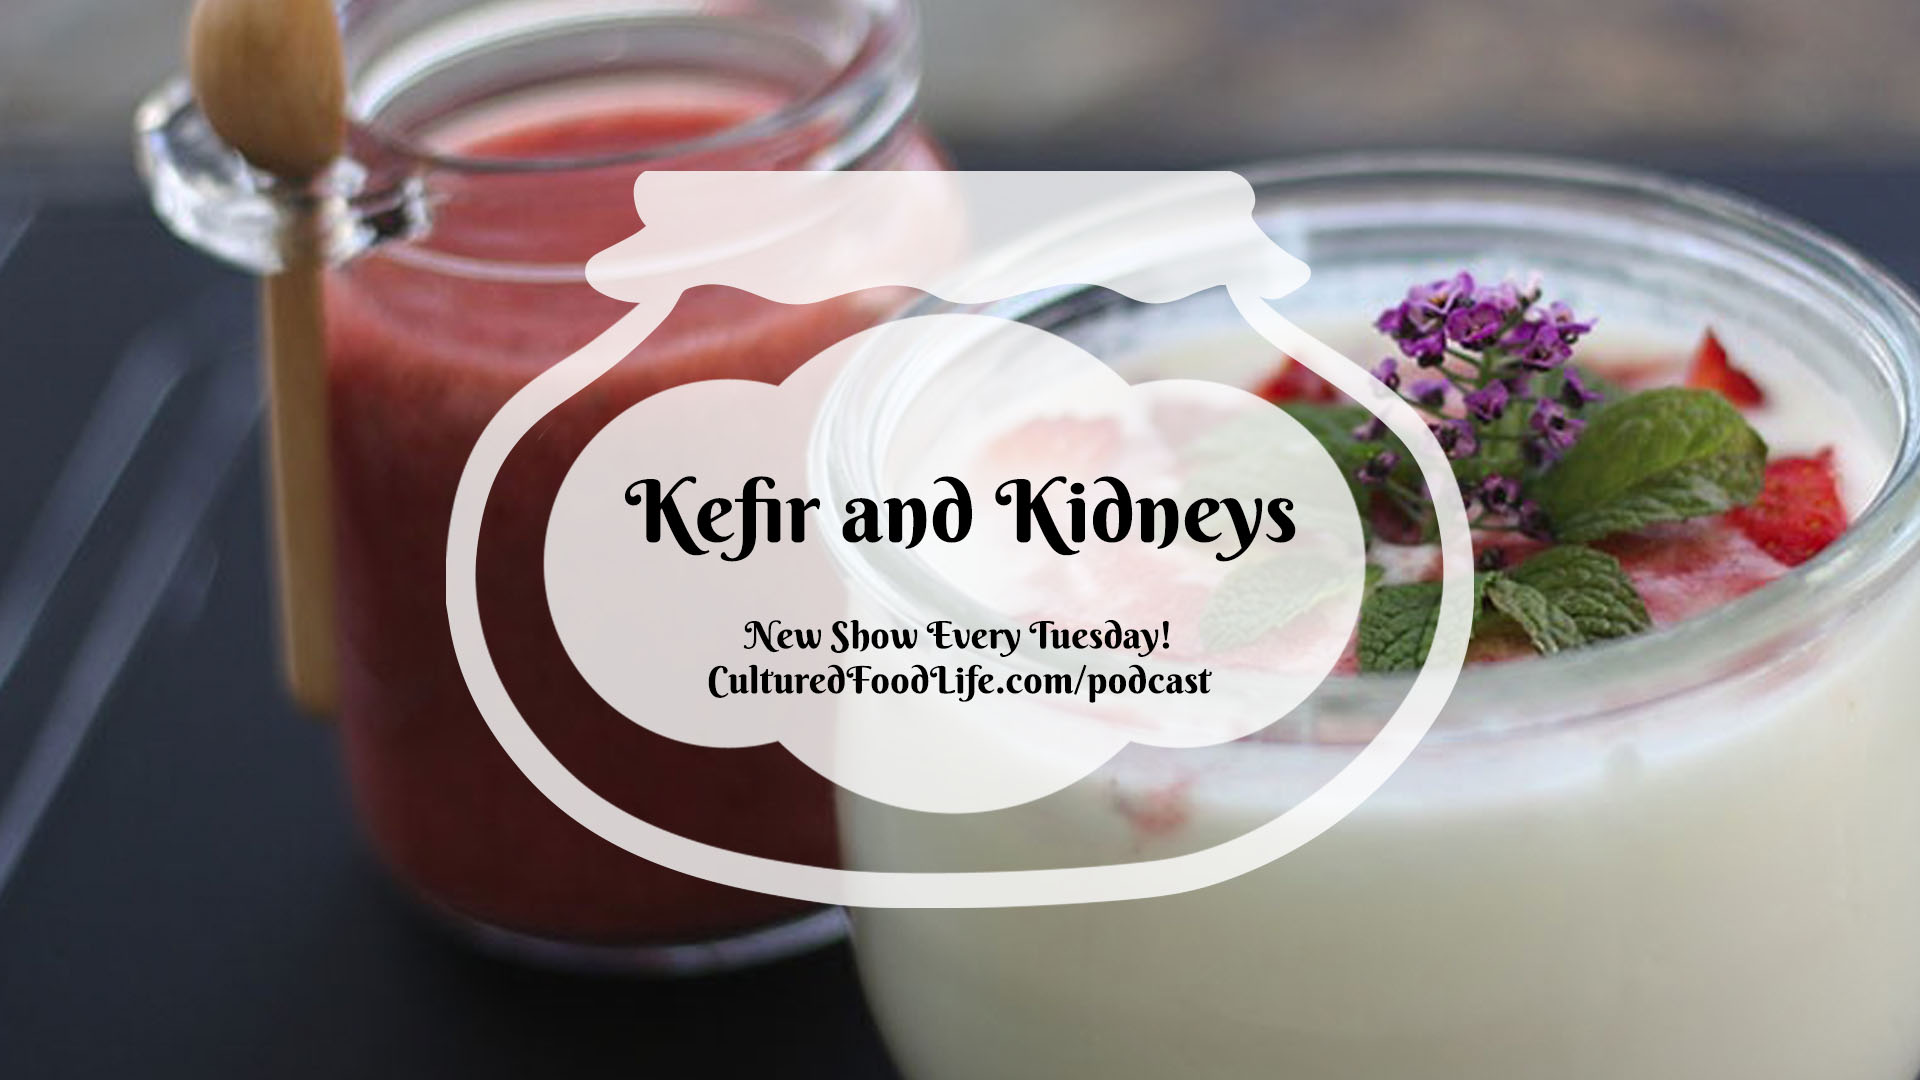 Kefir and Kidneys Full